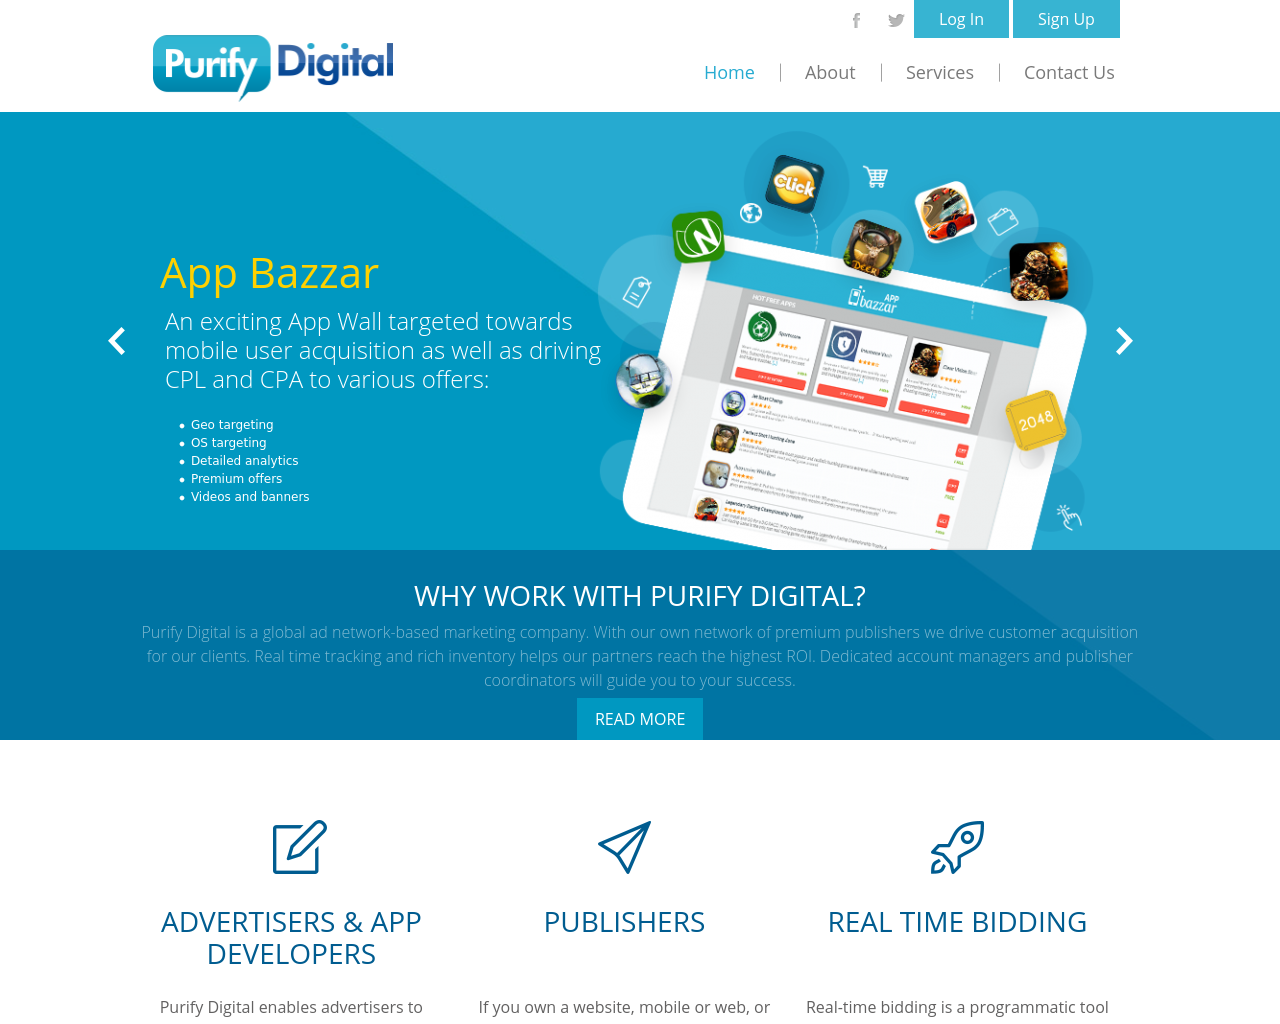 Purify-Digital-Advertising-Reviews-Pricing